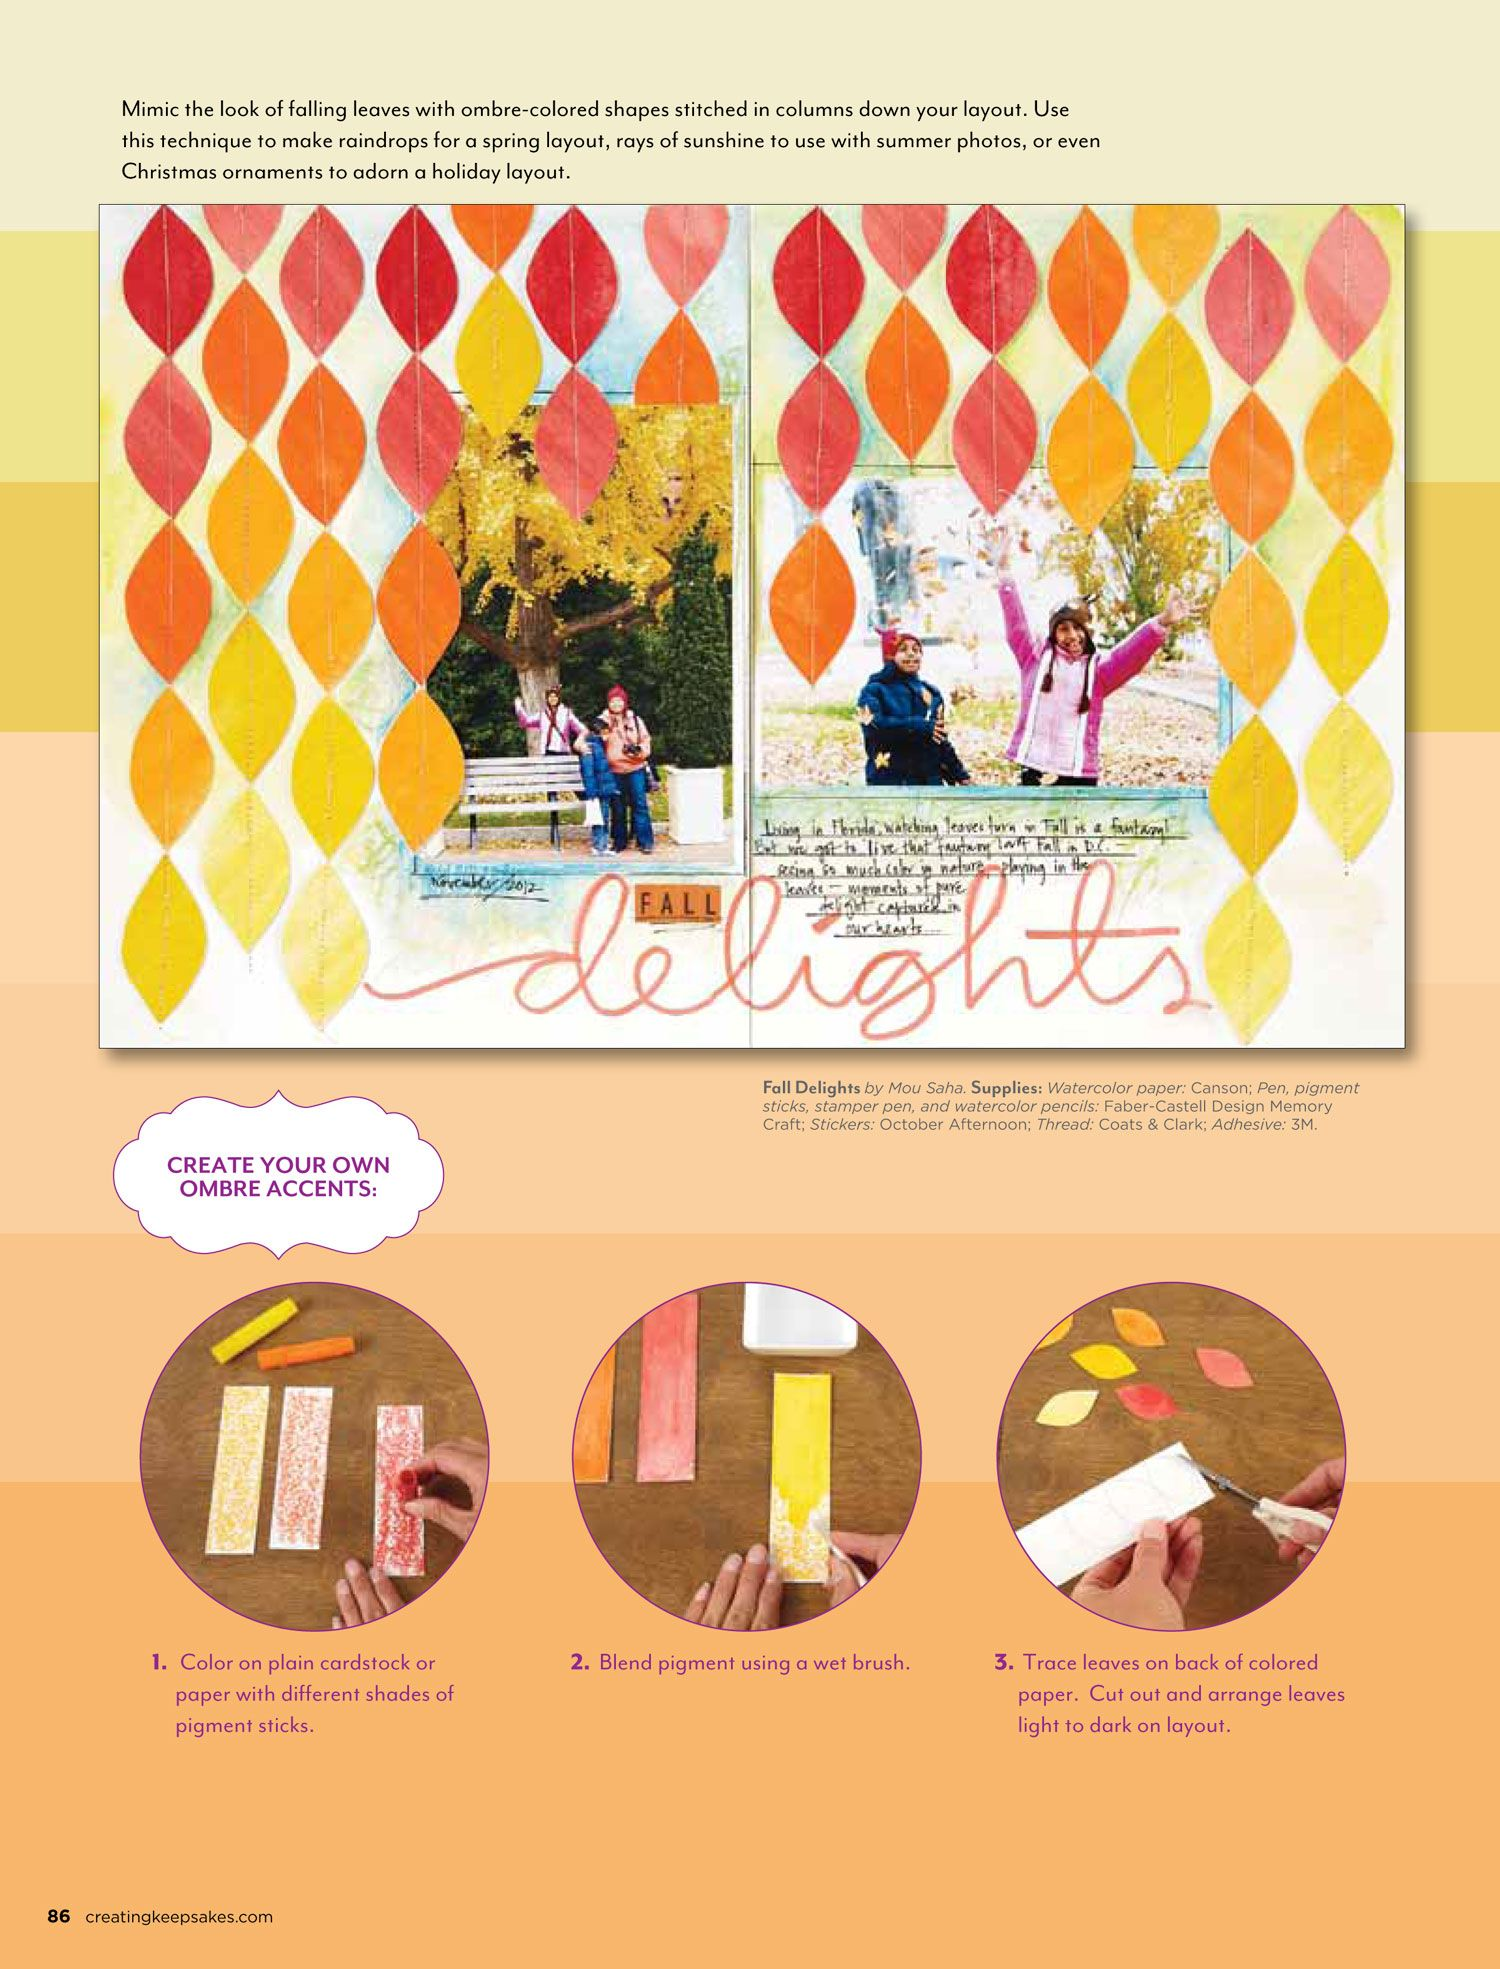 Scrapbook How To: Create Ombre Accents. Fall Delights layout by Mou Saha, created for the September/October 2013 issue of Creating Keepsakes magazine.  http://www.creatingkeepsakes.com/issues/index.html?current_issue